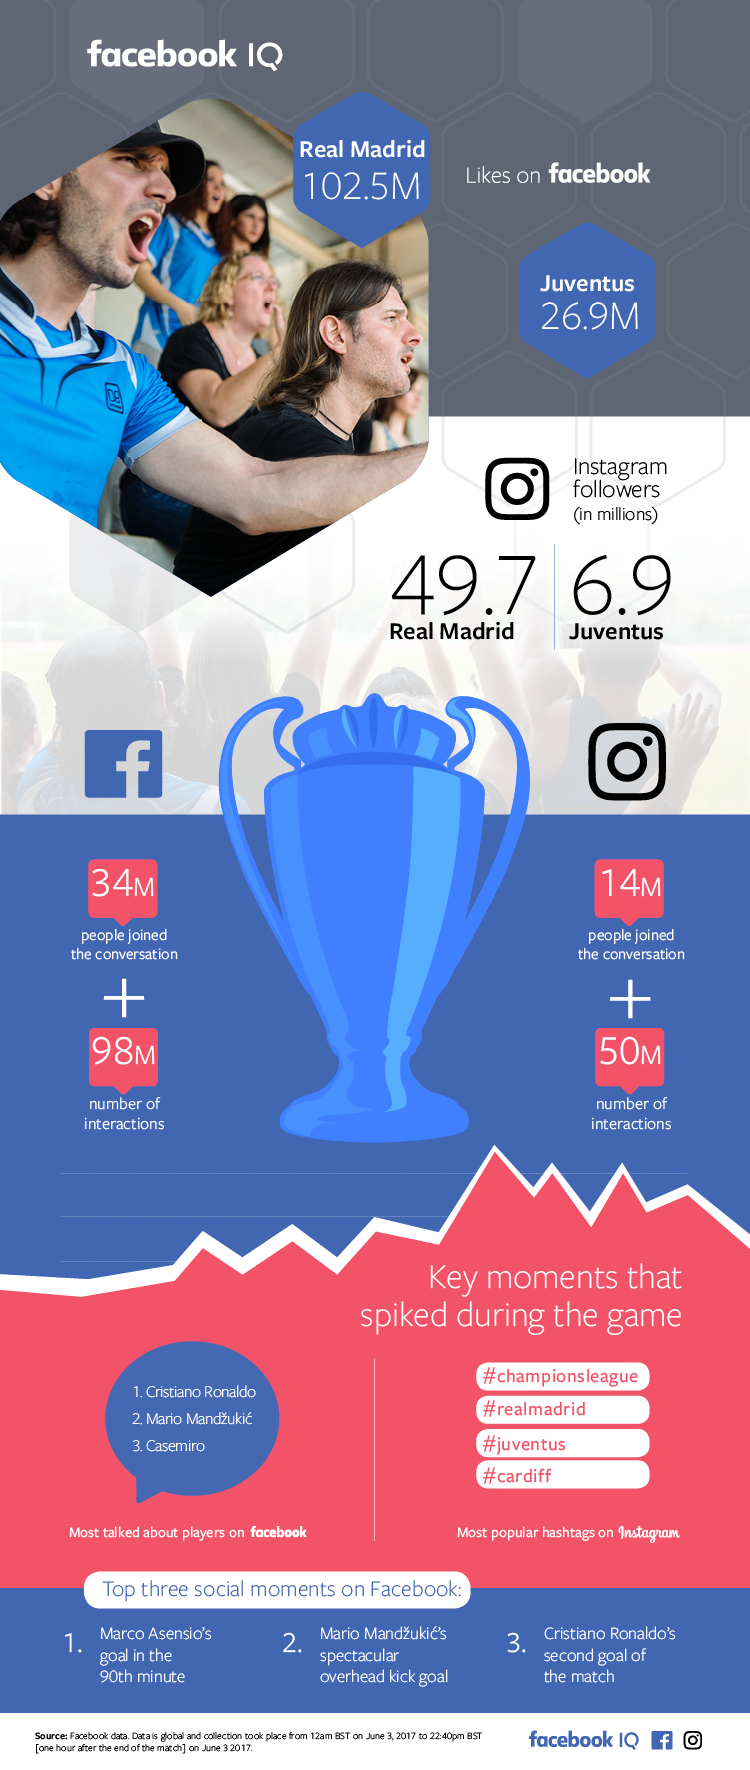 2017 UEFA Champions League Final on Facebook and Instagram [Infographic] | Social Media Today